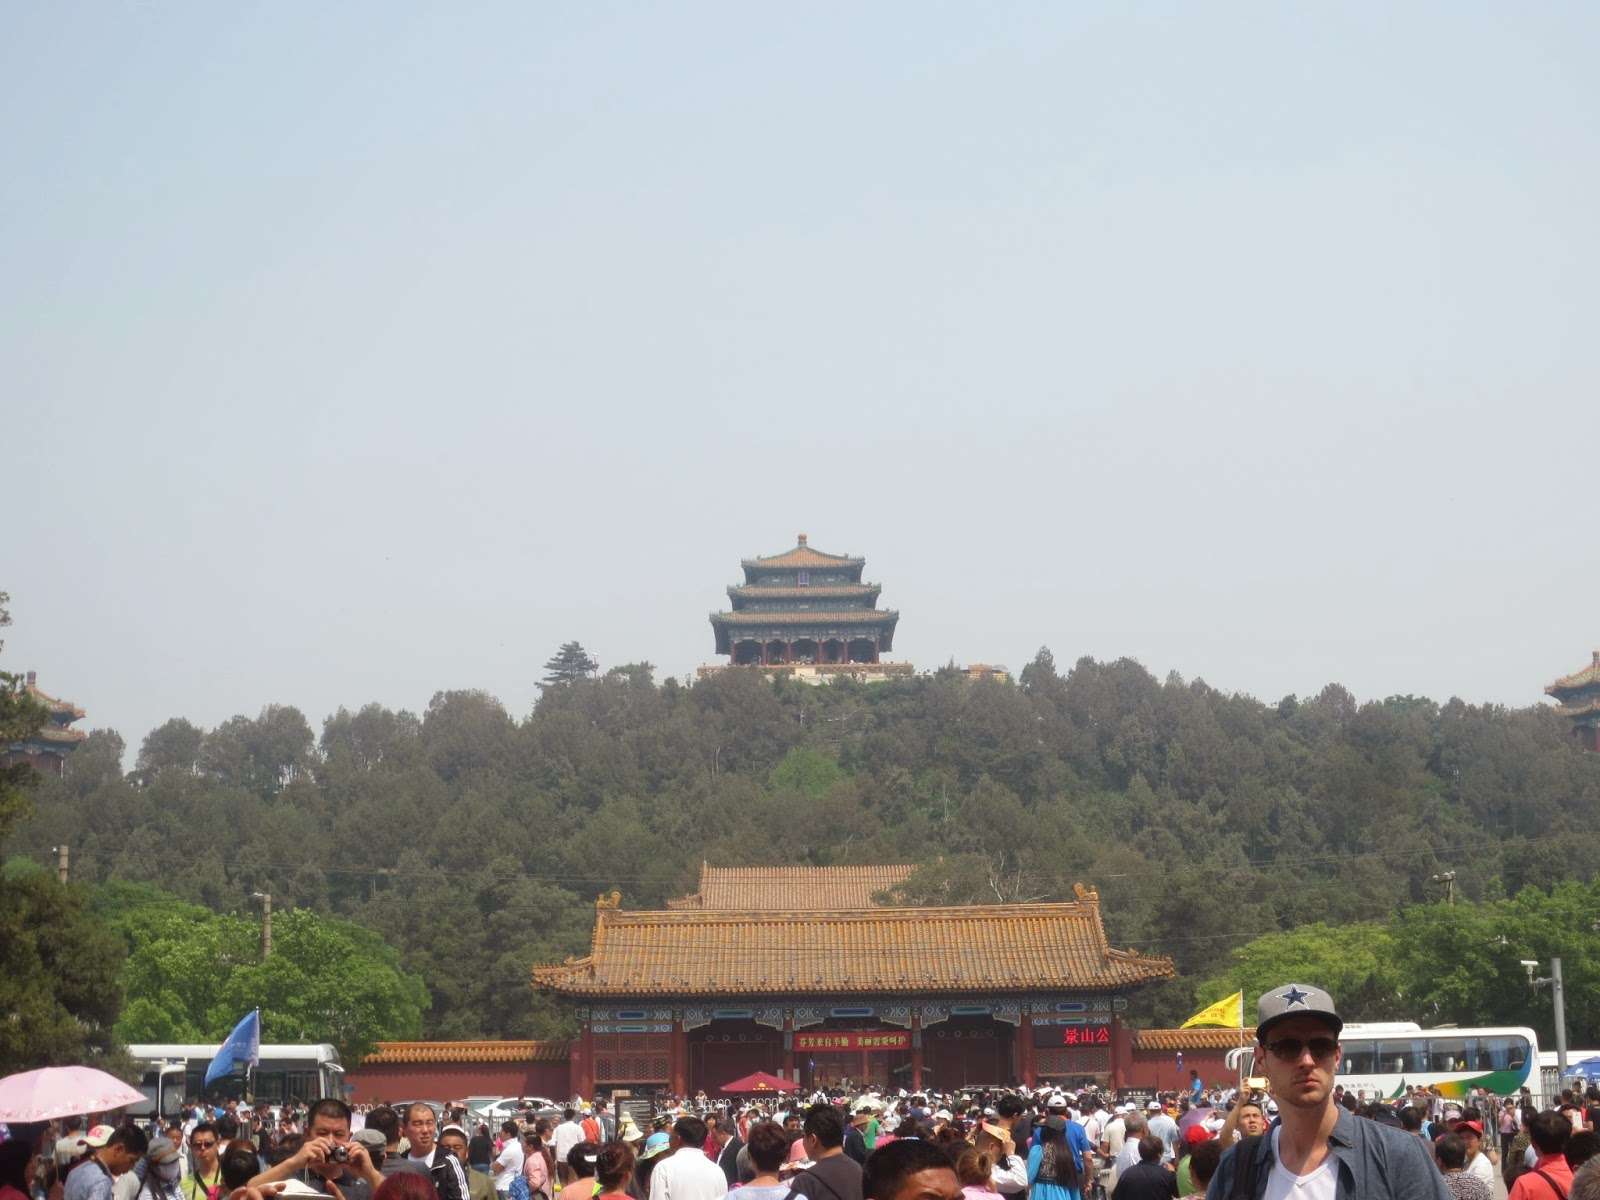 View from outside Forbidden City